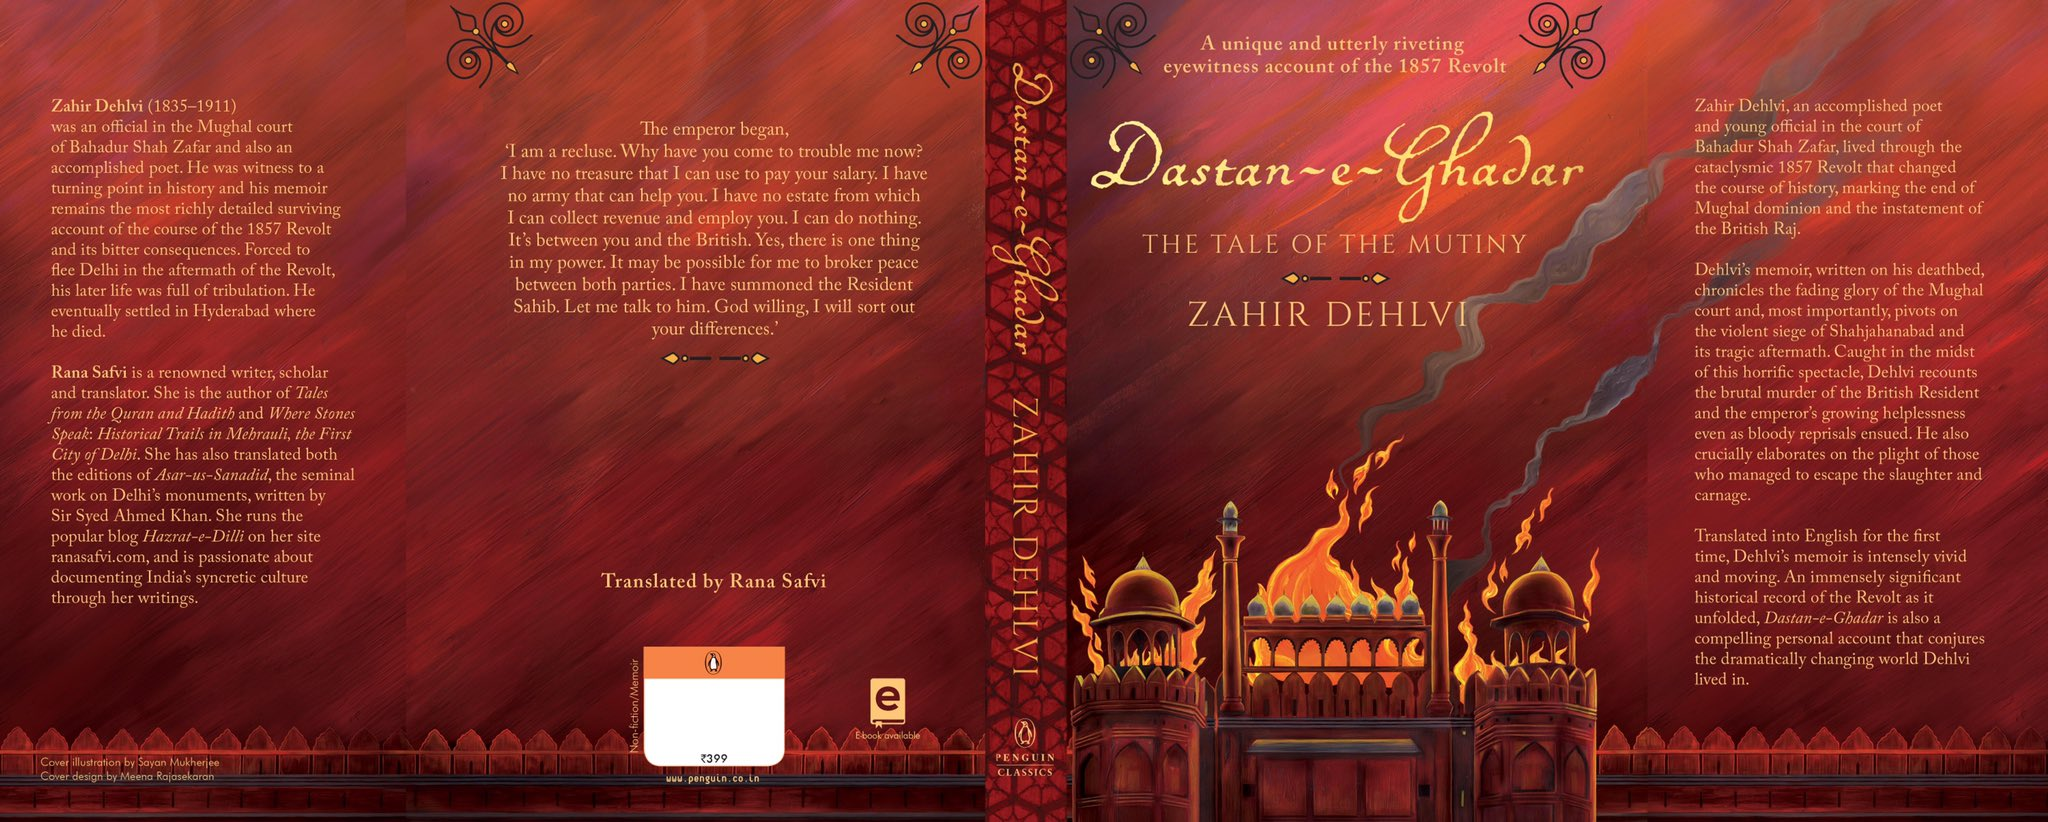 """Rana Safvi رعنا राना on Twitter: """"I've been working on it for some years. And the wait is finally over! Dastan e Ghadar in my hands @PenguinIndia ..."""